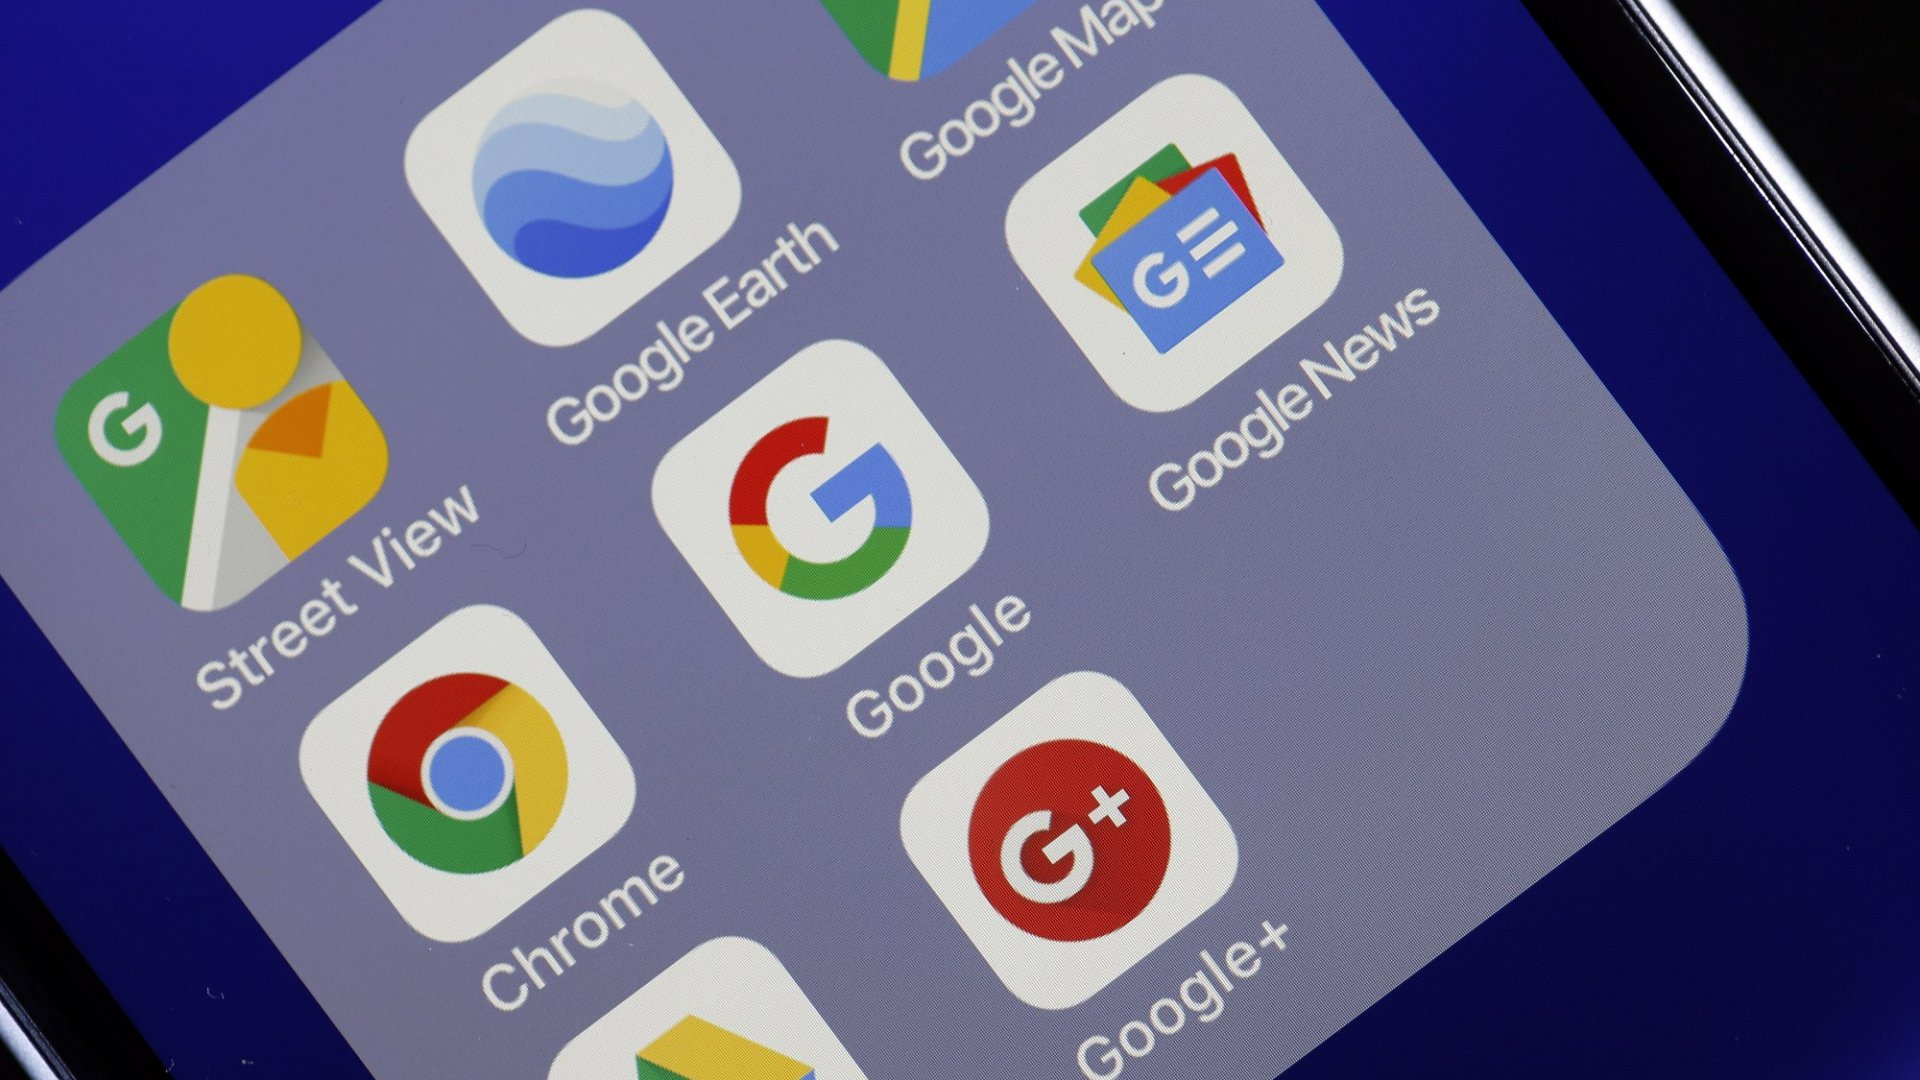 Google's Making It Easier to Delete Personal Data, and It's a Big Deal